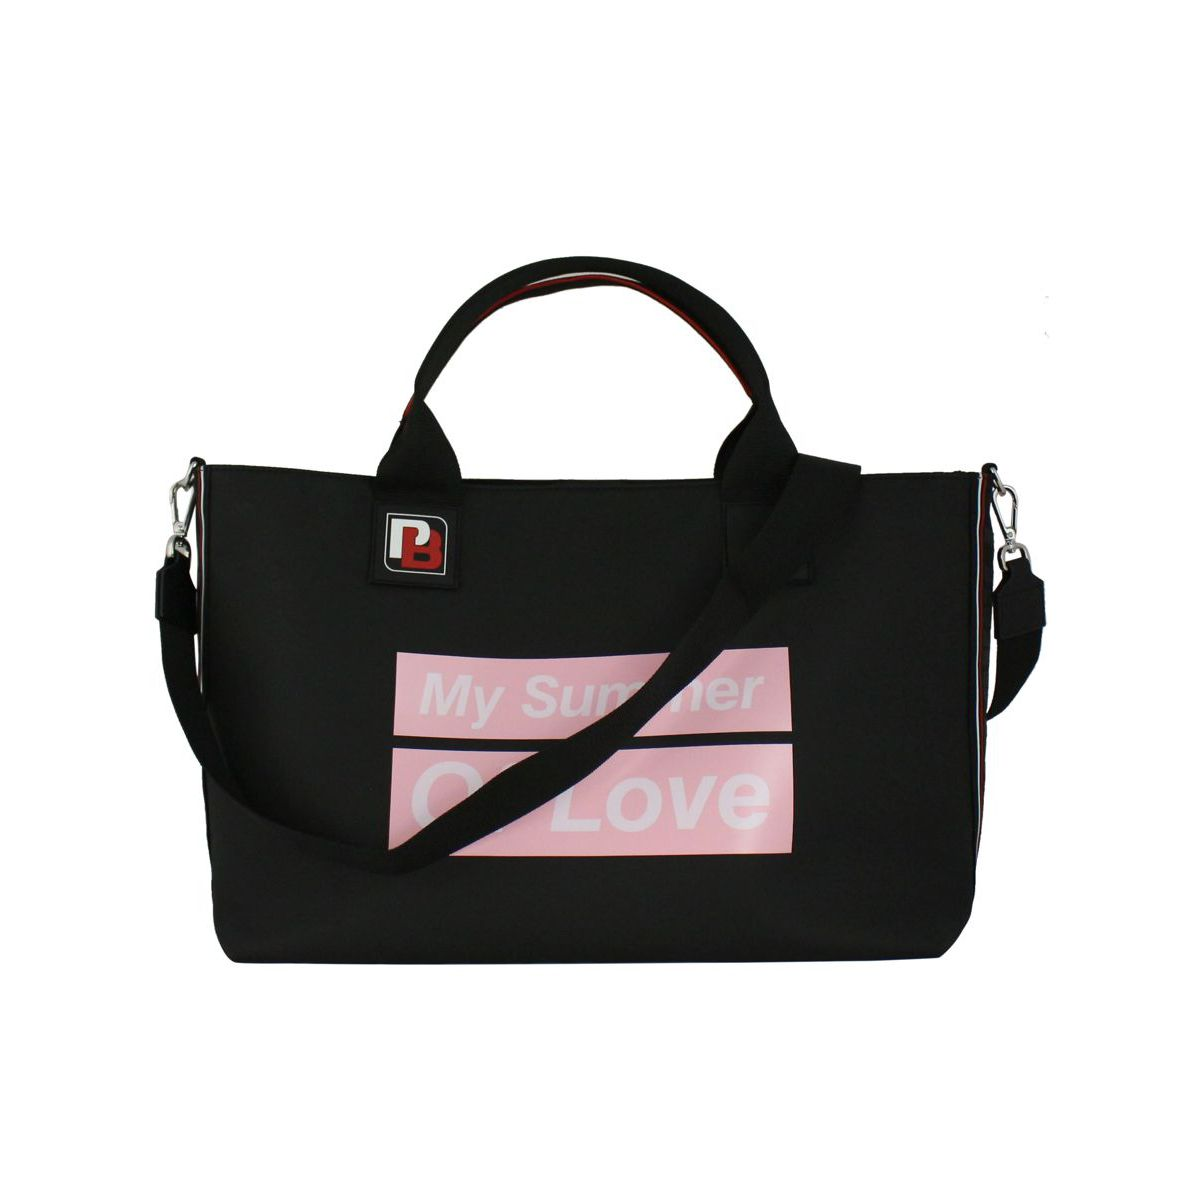 Shopping bag Variety with rubber effect Black / pink Pinko